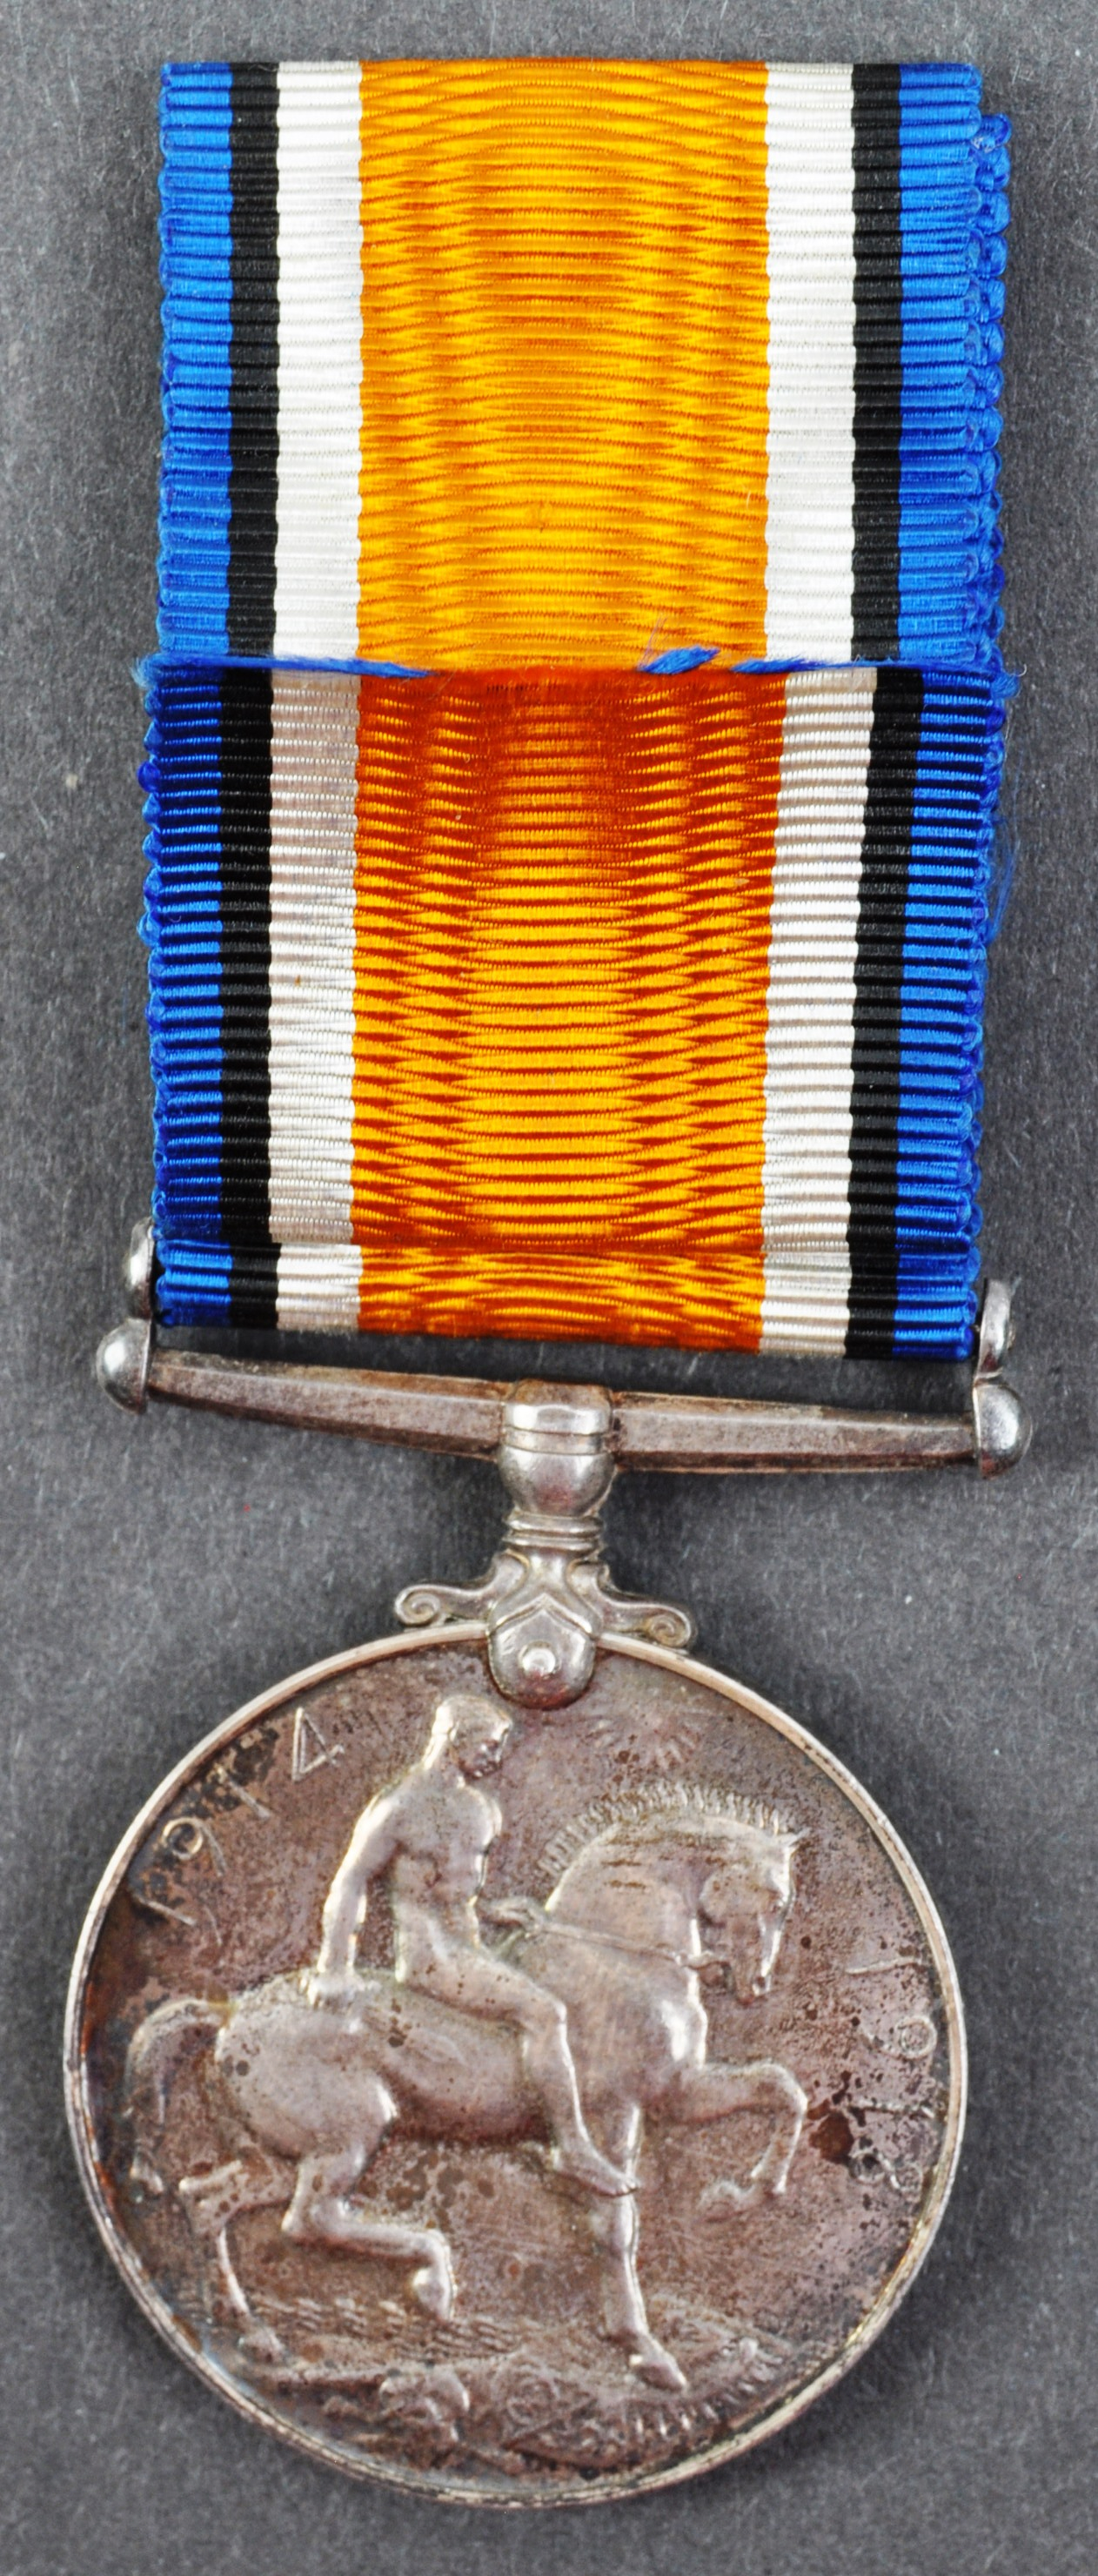 WWI FIRST WORLD WAR MEDAL TO A MAJOR J. F. N. PRICE - Image 2 of 4